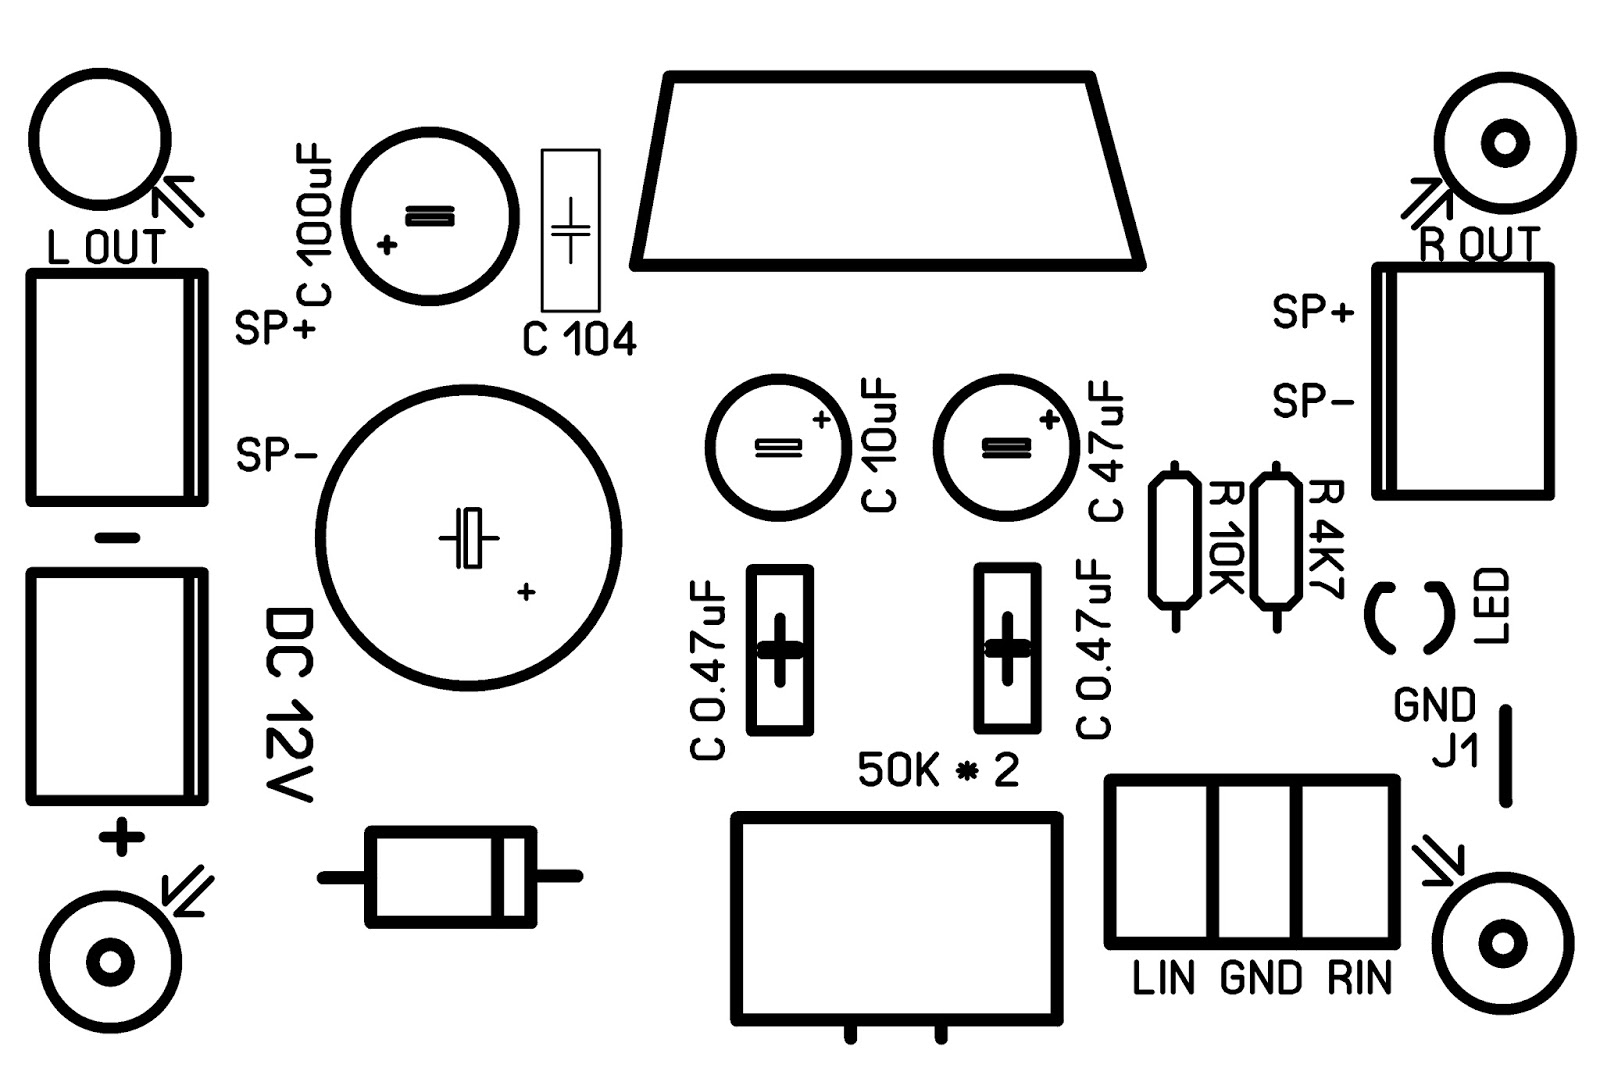 hight resolution of connection diagram tda7377 pcb